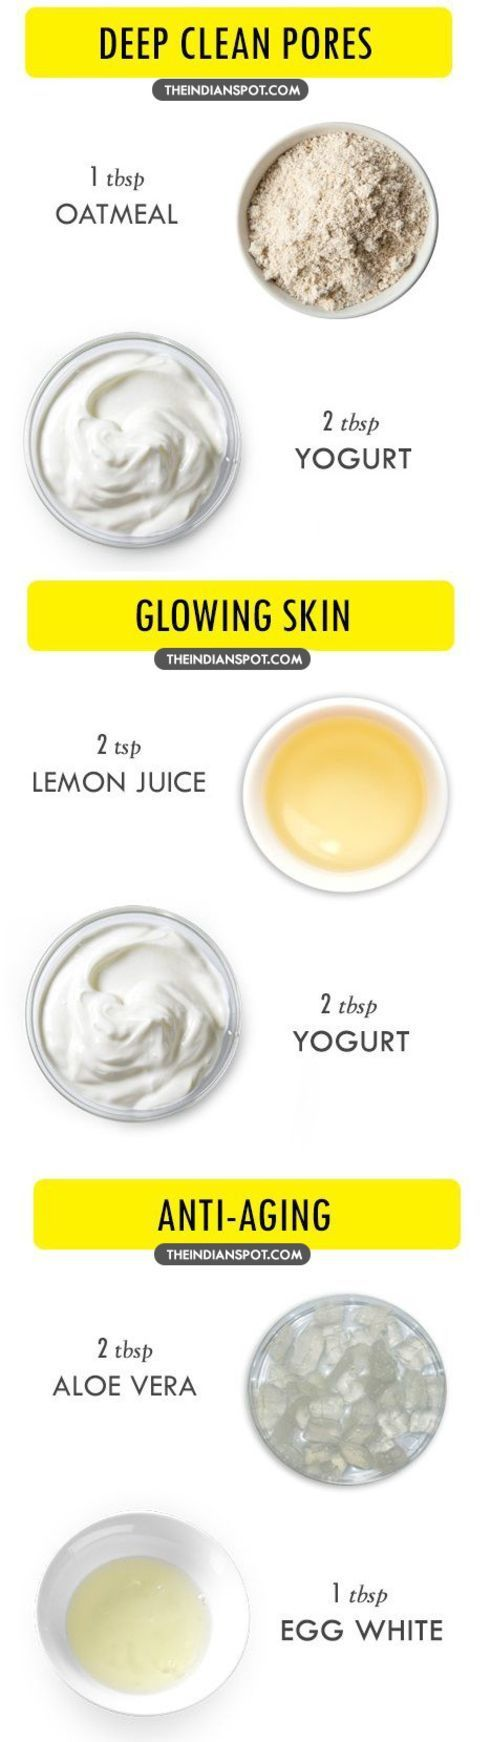 Acne Mask DIY - Homemade Acne Face Mask Recipes - Simple 1 Ingredient Face Masks for Acne *** Click image for more details. #HomemadeAcneMask #acnemask,